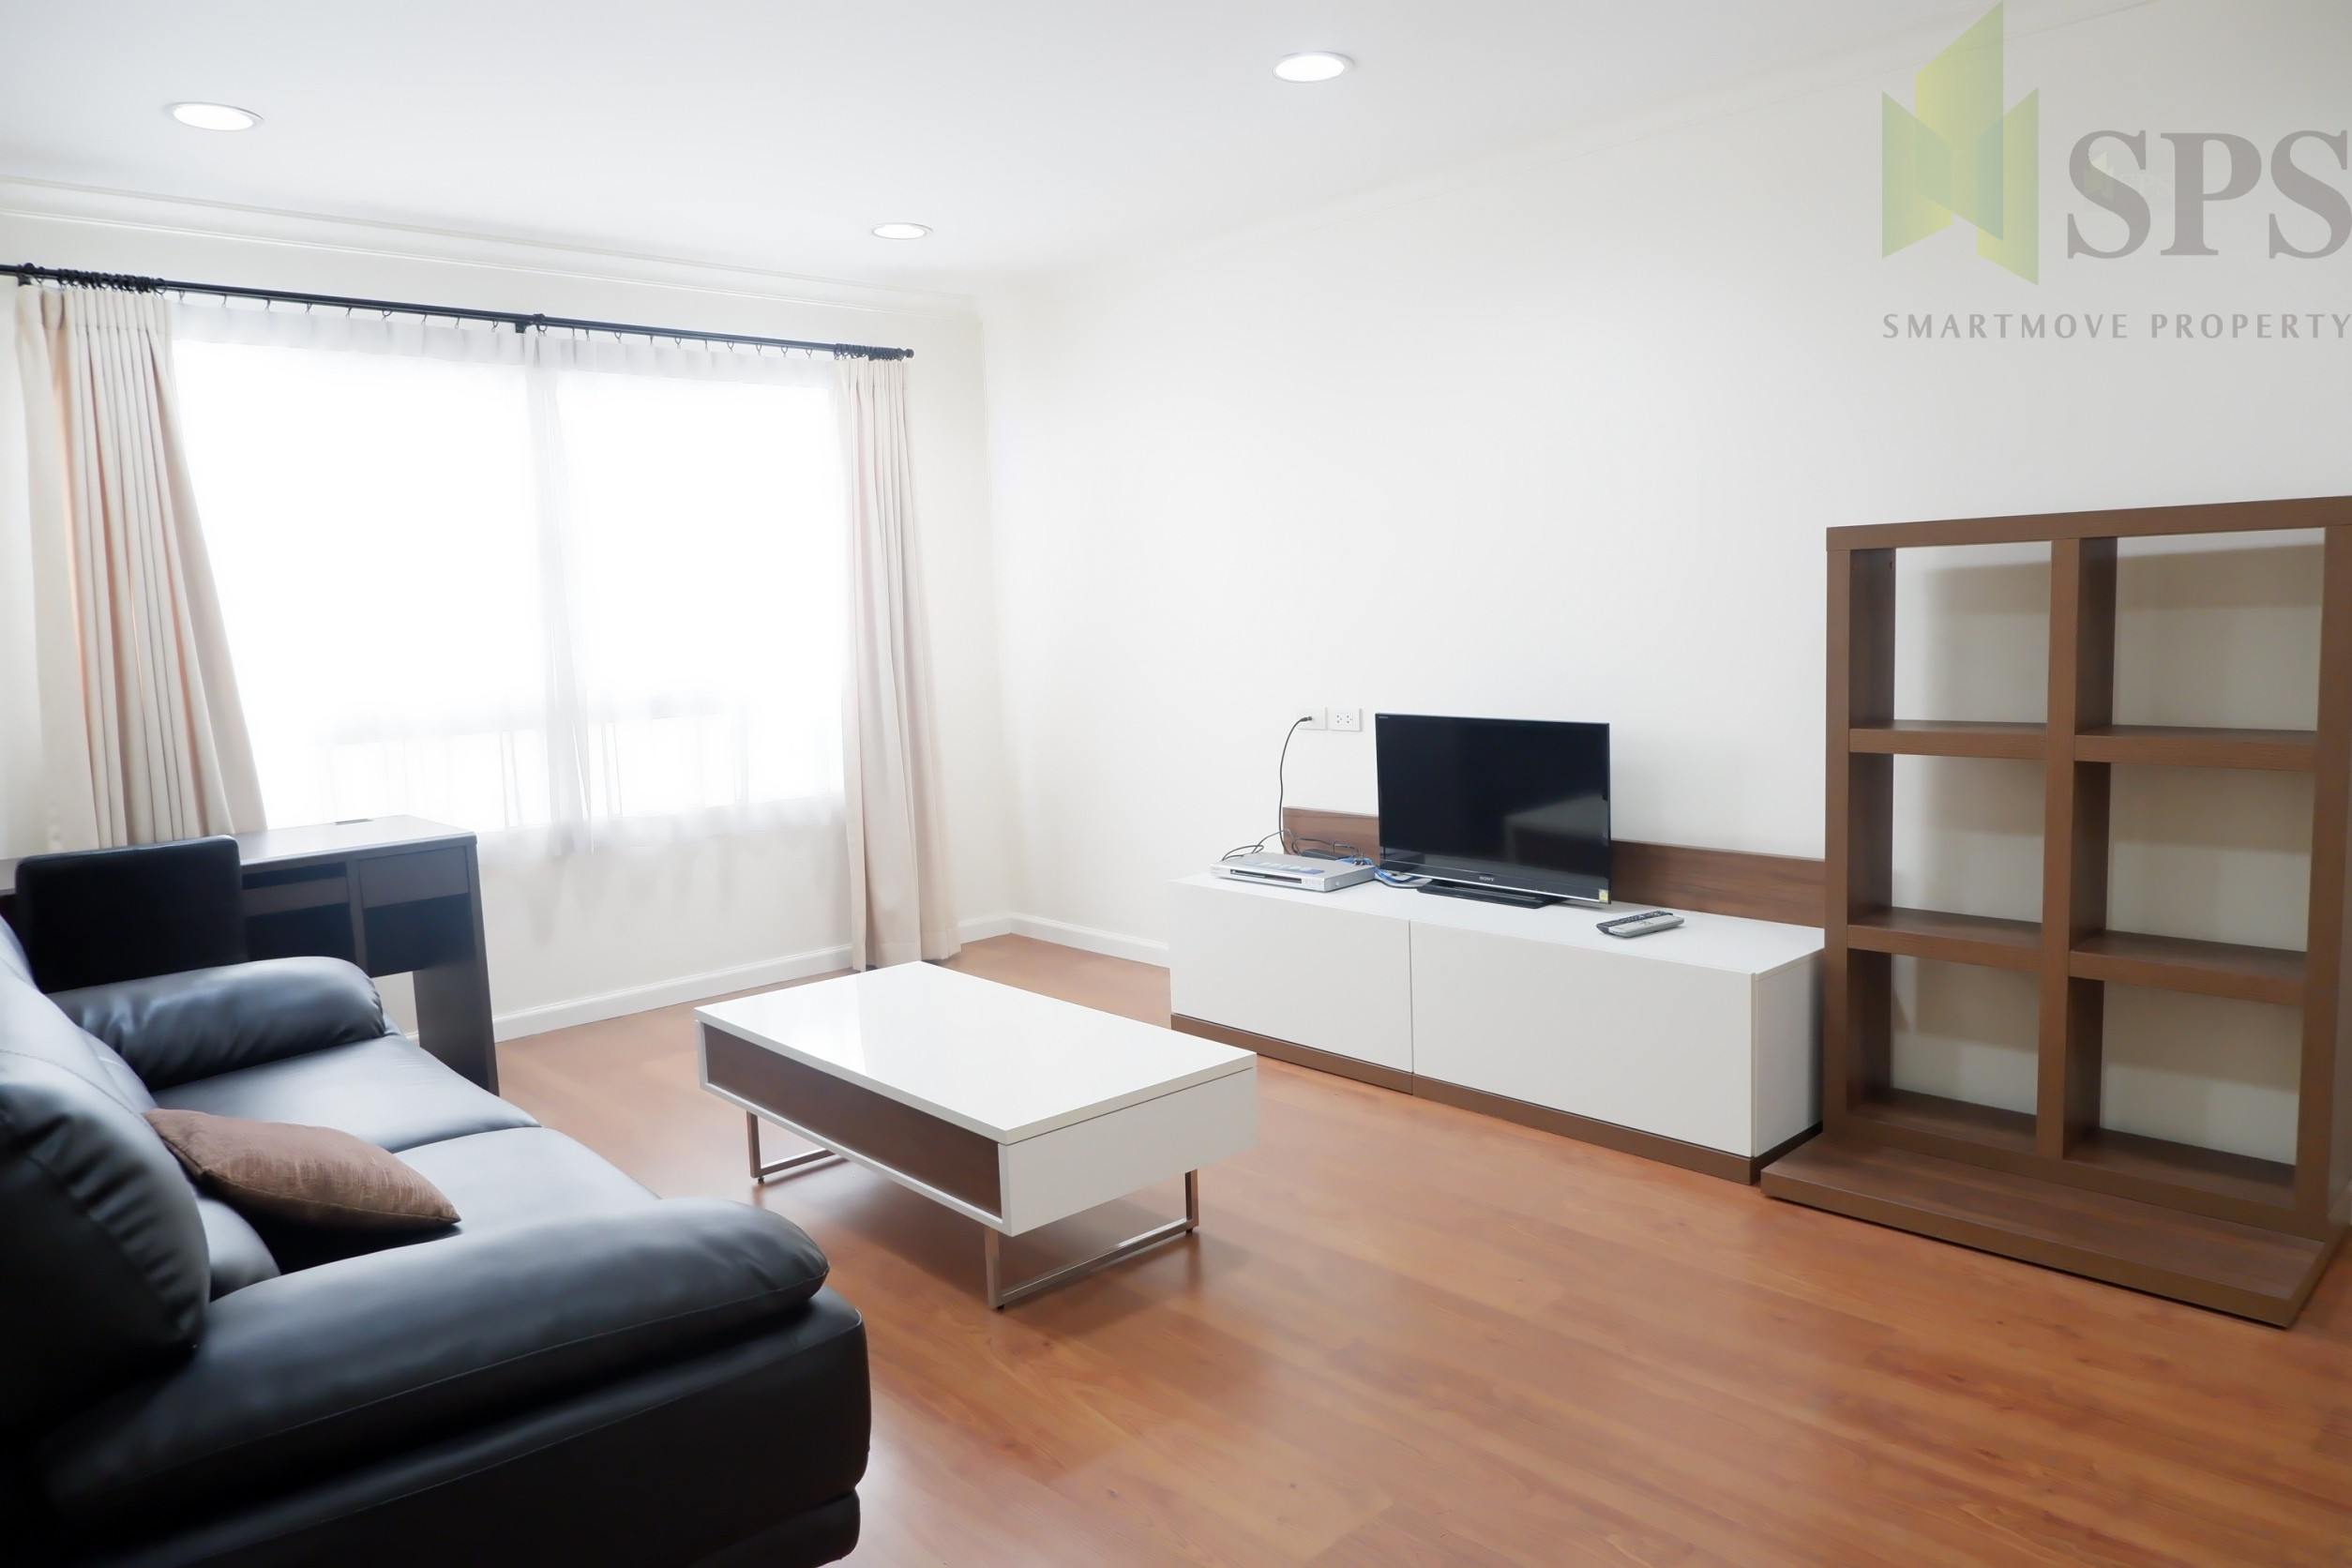 For Rent Condo Lumpini Suite 1 bedroom Sukhumvit 41 (SPS-GC114)